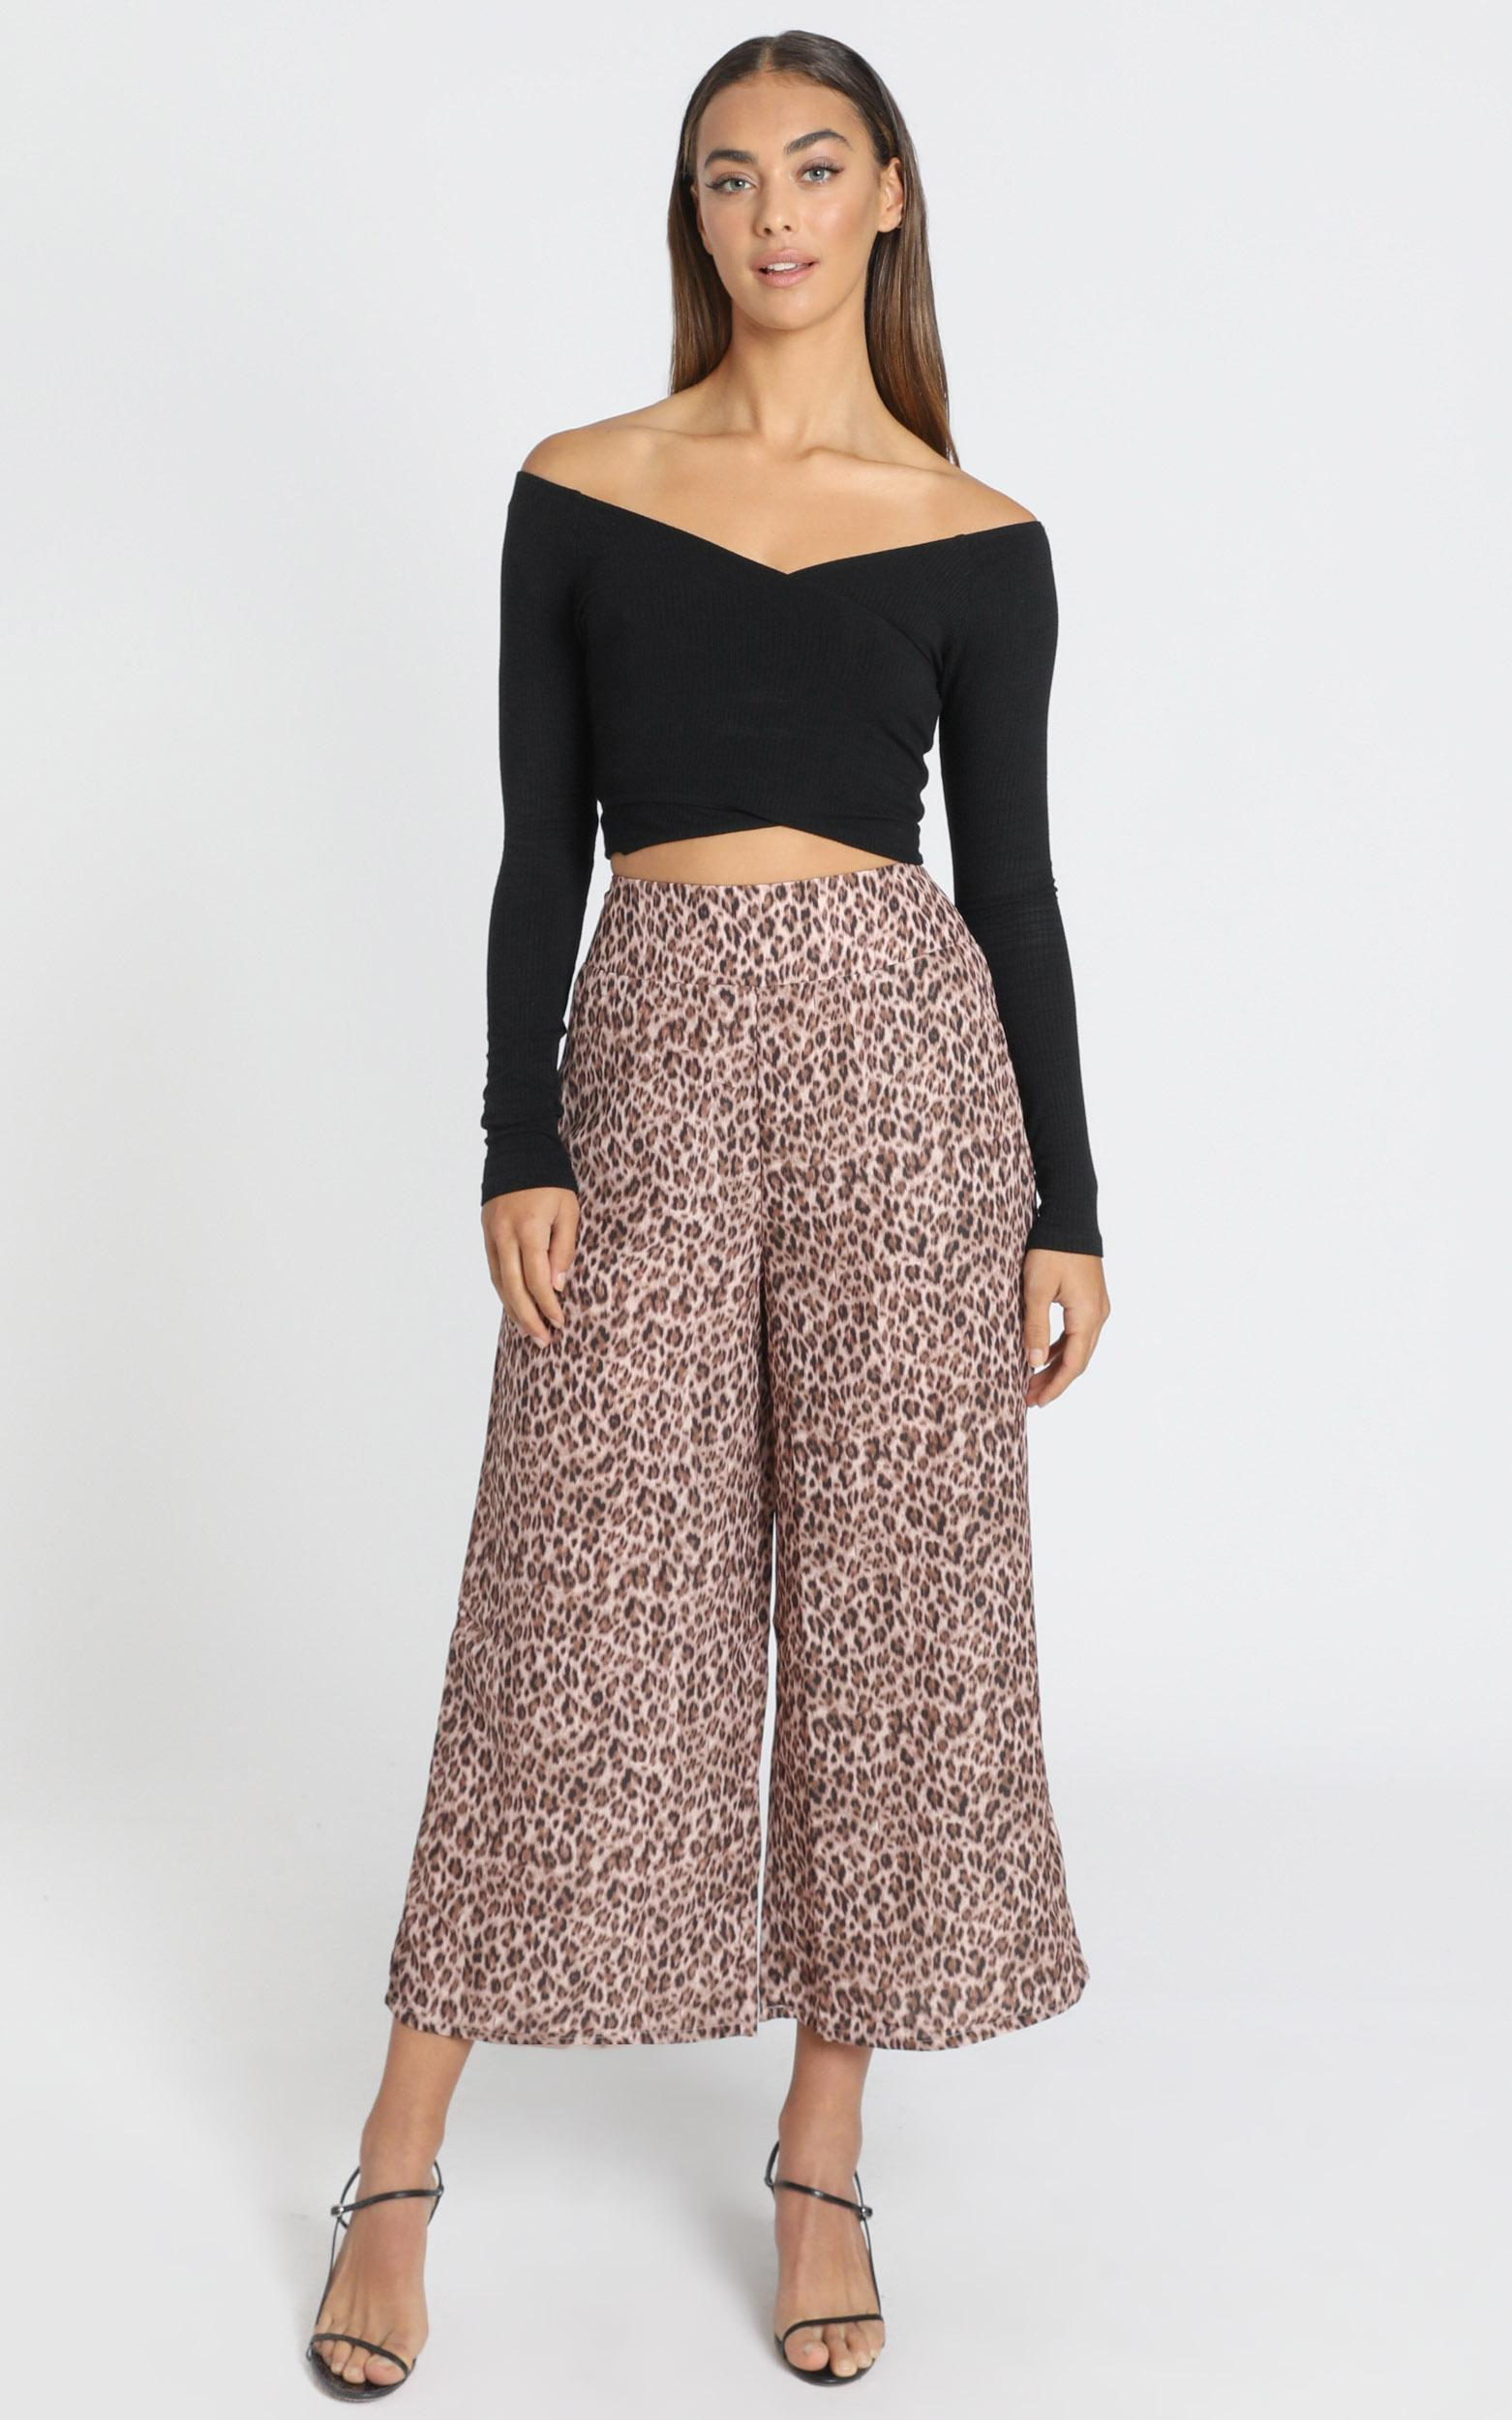 Elisa Pants in Leopard Print - 6 (XS), Brown, hi-res image number null